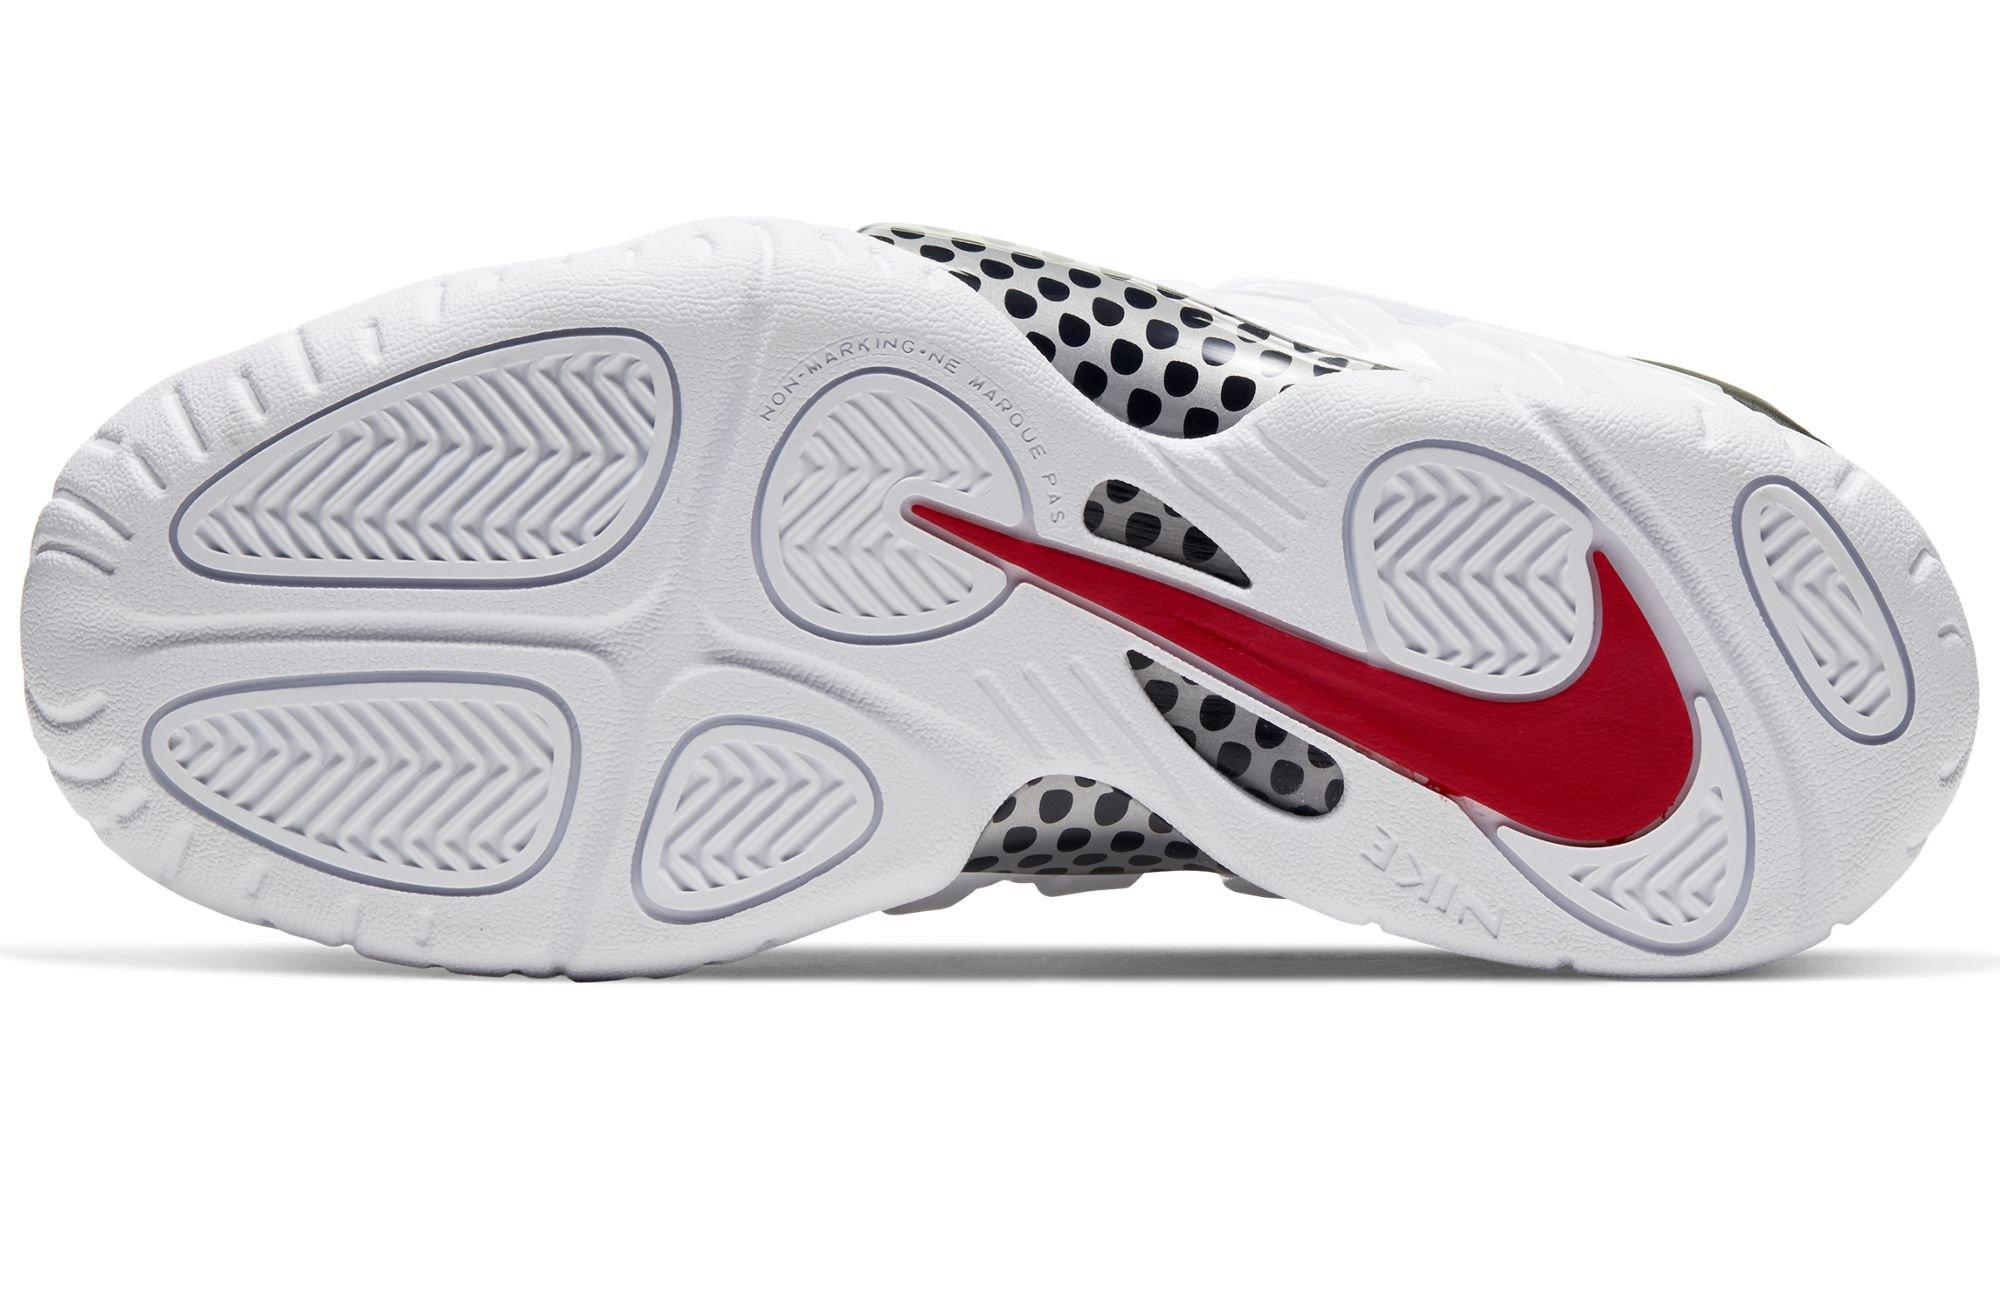 "Nike Air Foamposite and Little Posite Pro ""White/Black/University Red"" bottom"